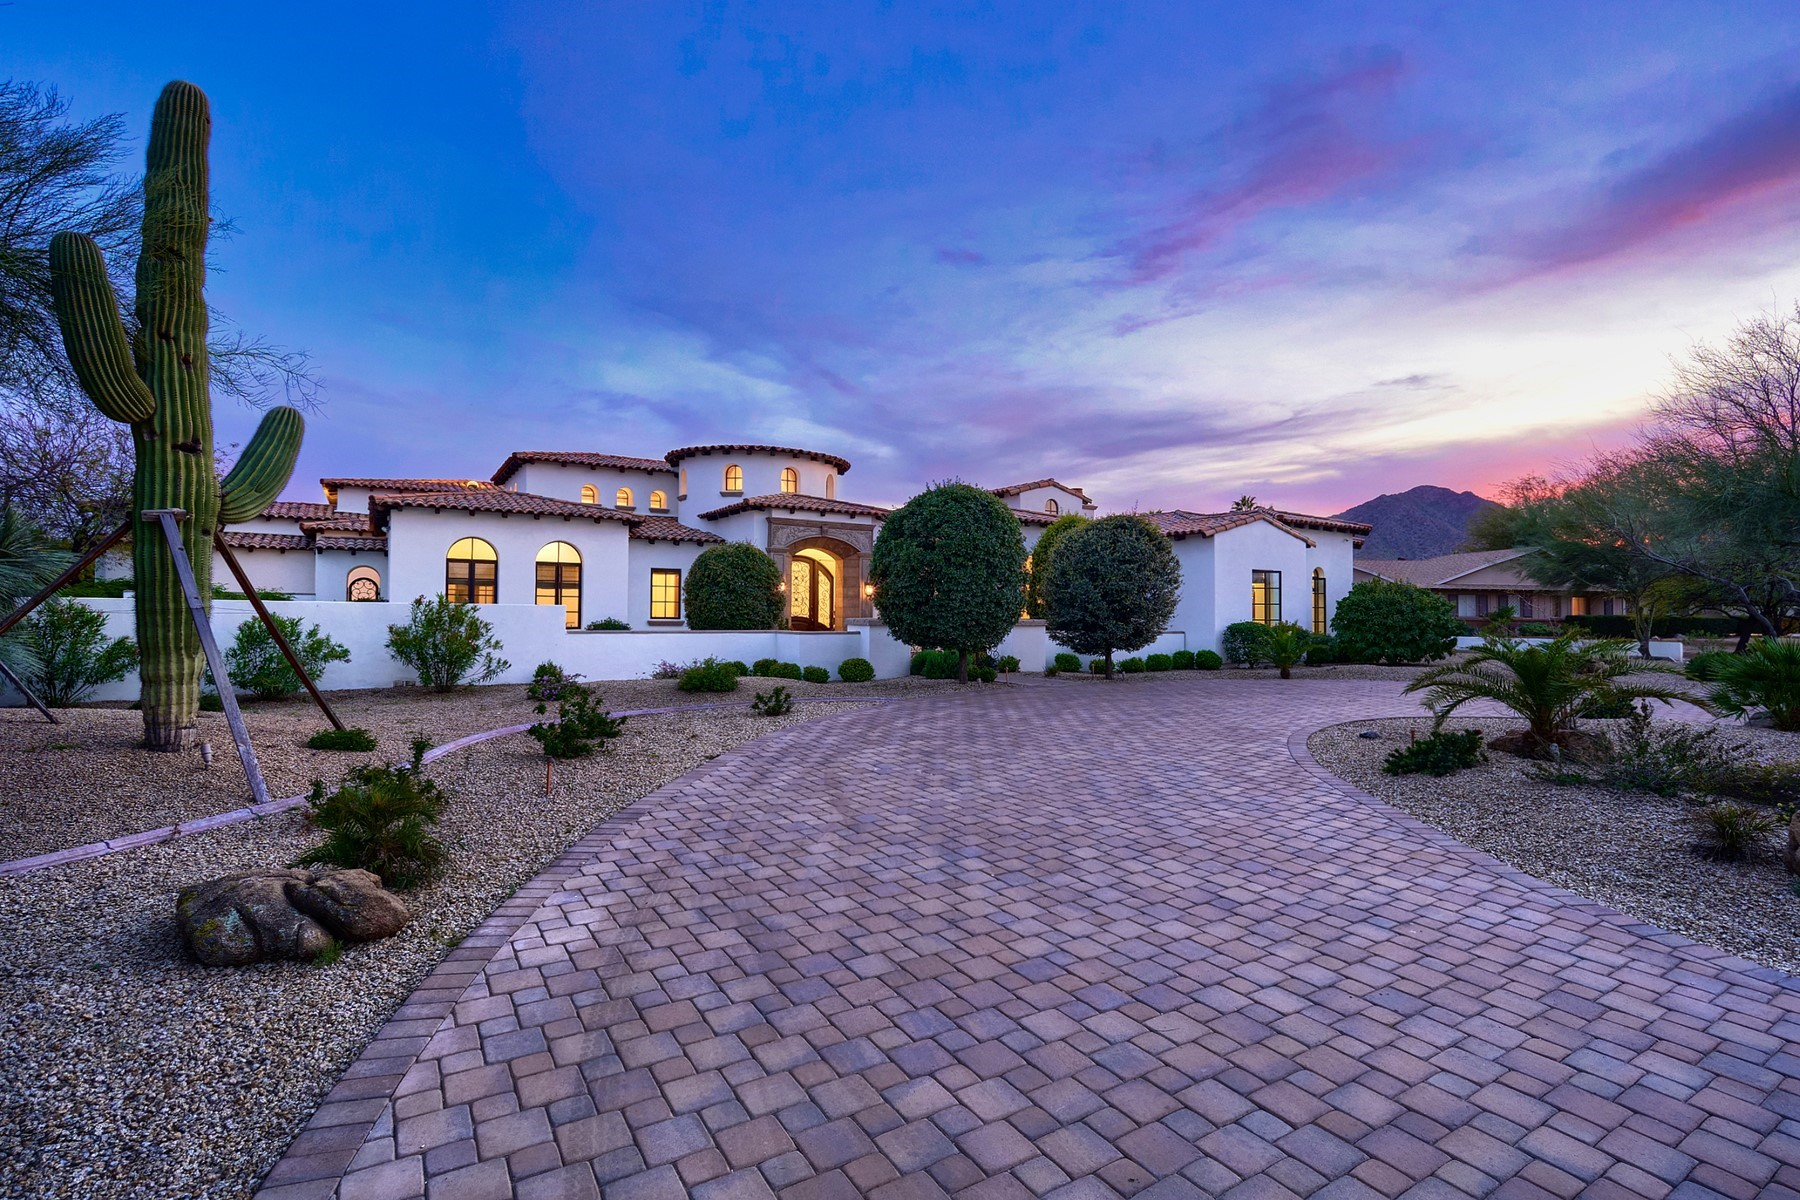 Property for Sale at Hidden Village 6809 E Valley Vista LN, Paradise Valley, Arizona 85253 United States